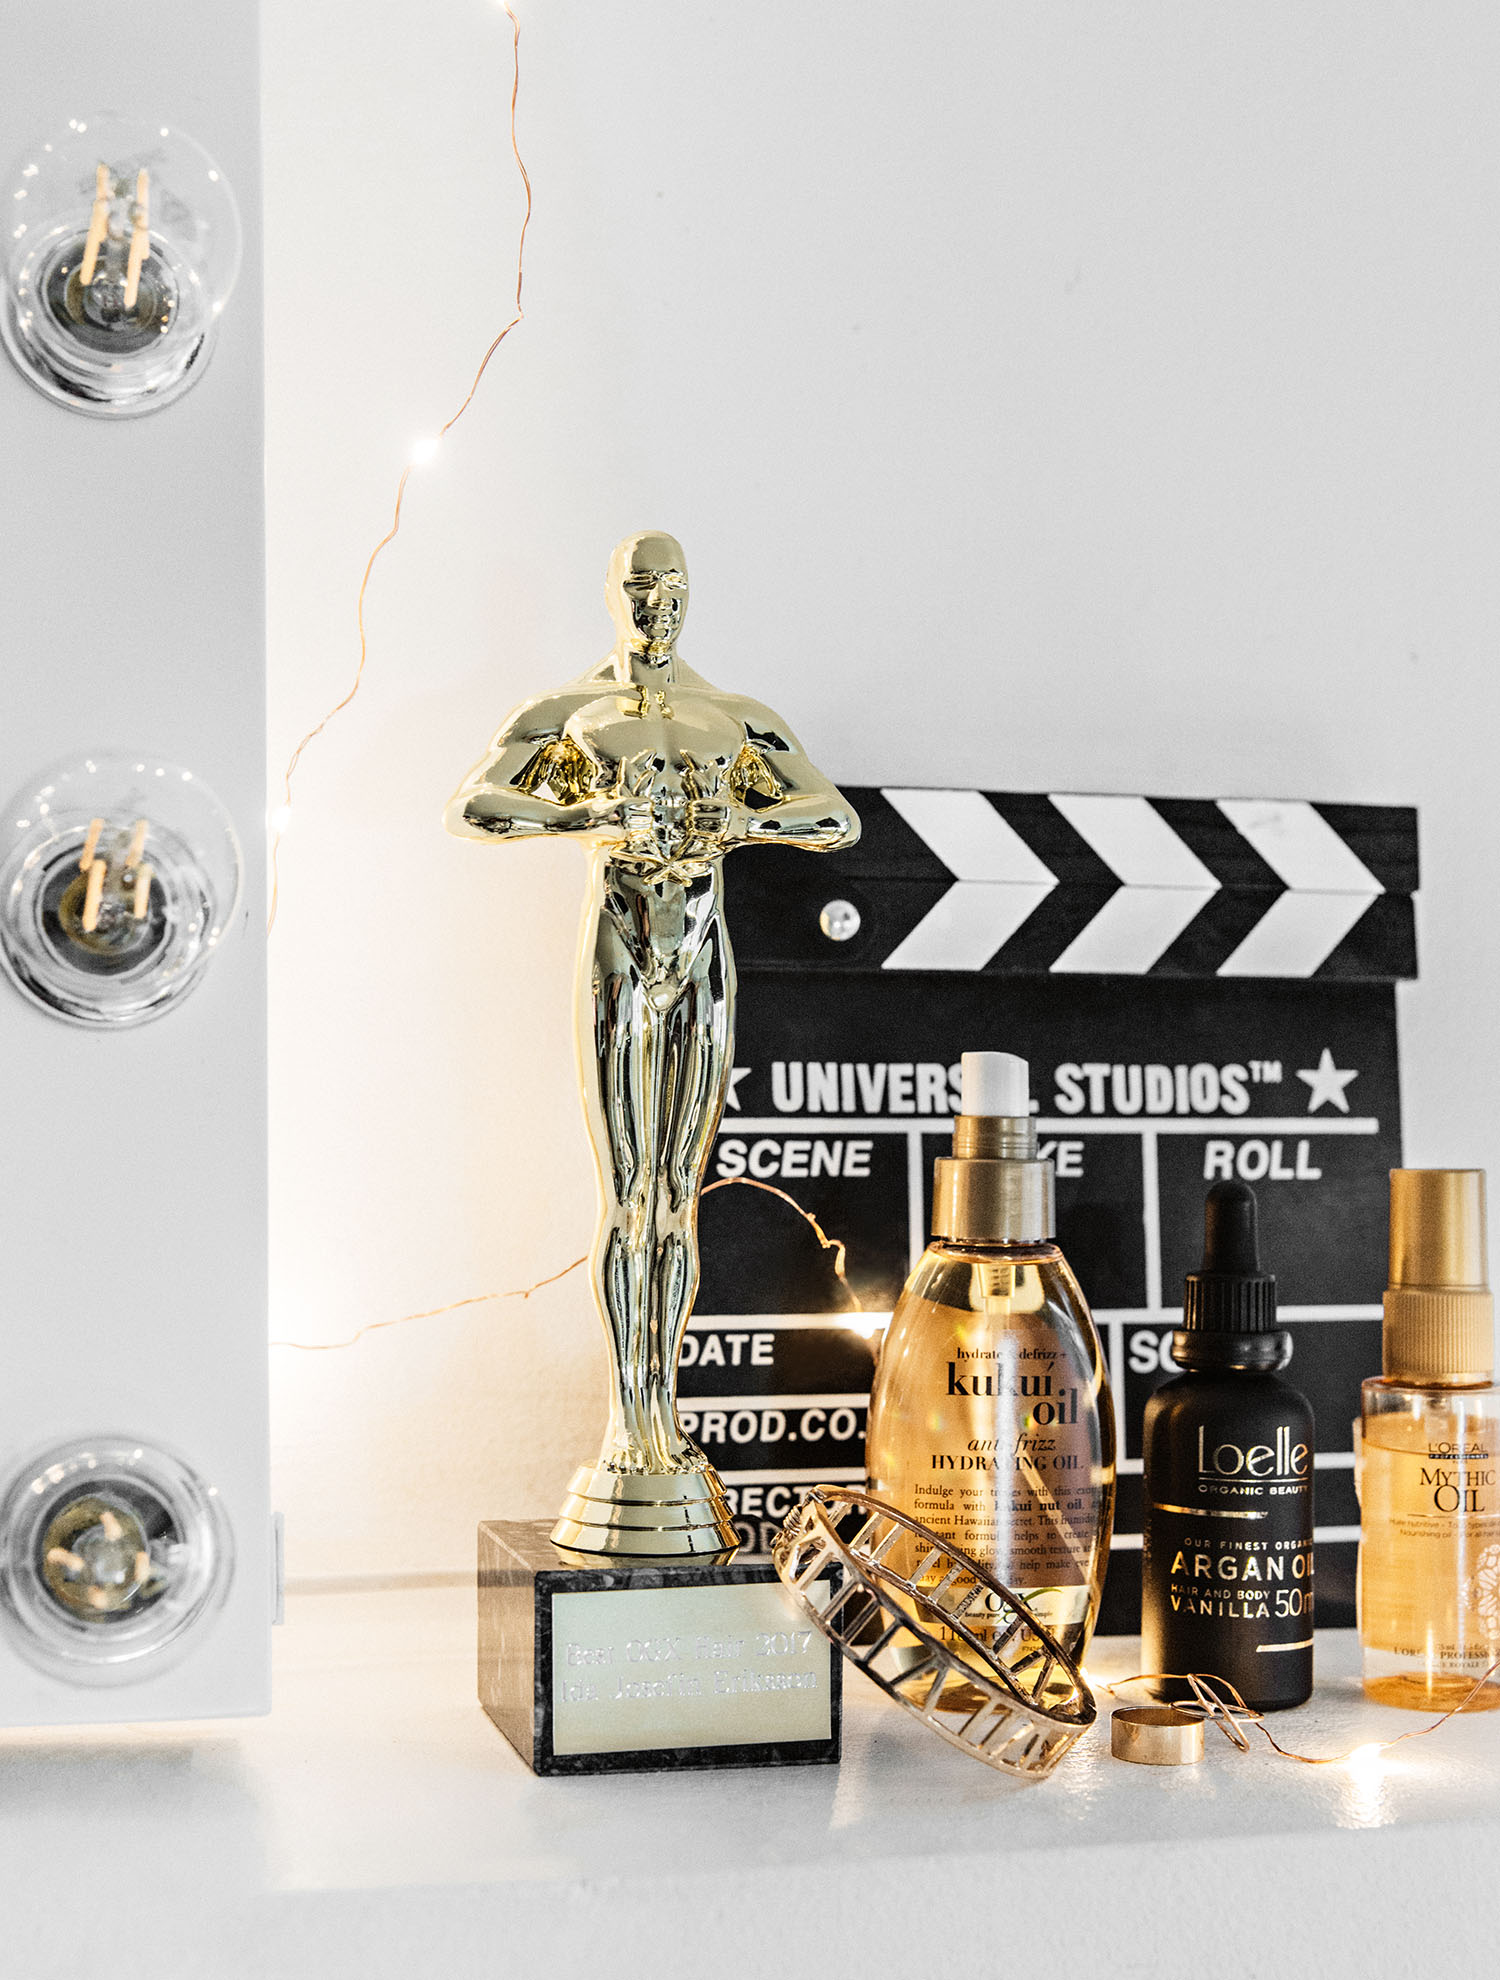 Hair Oils and an Oscar Statuette - Hollywood Hair